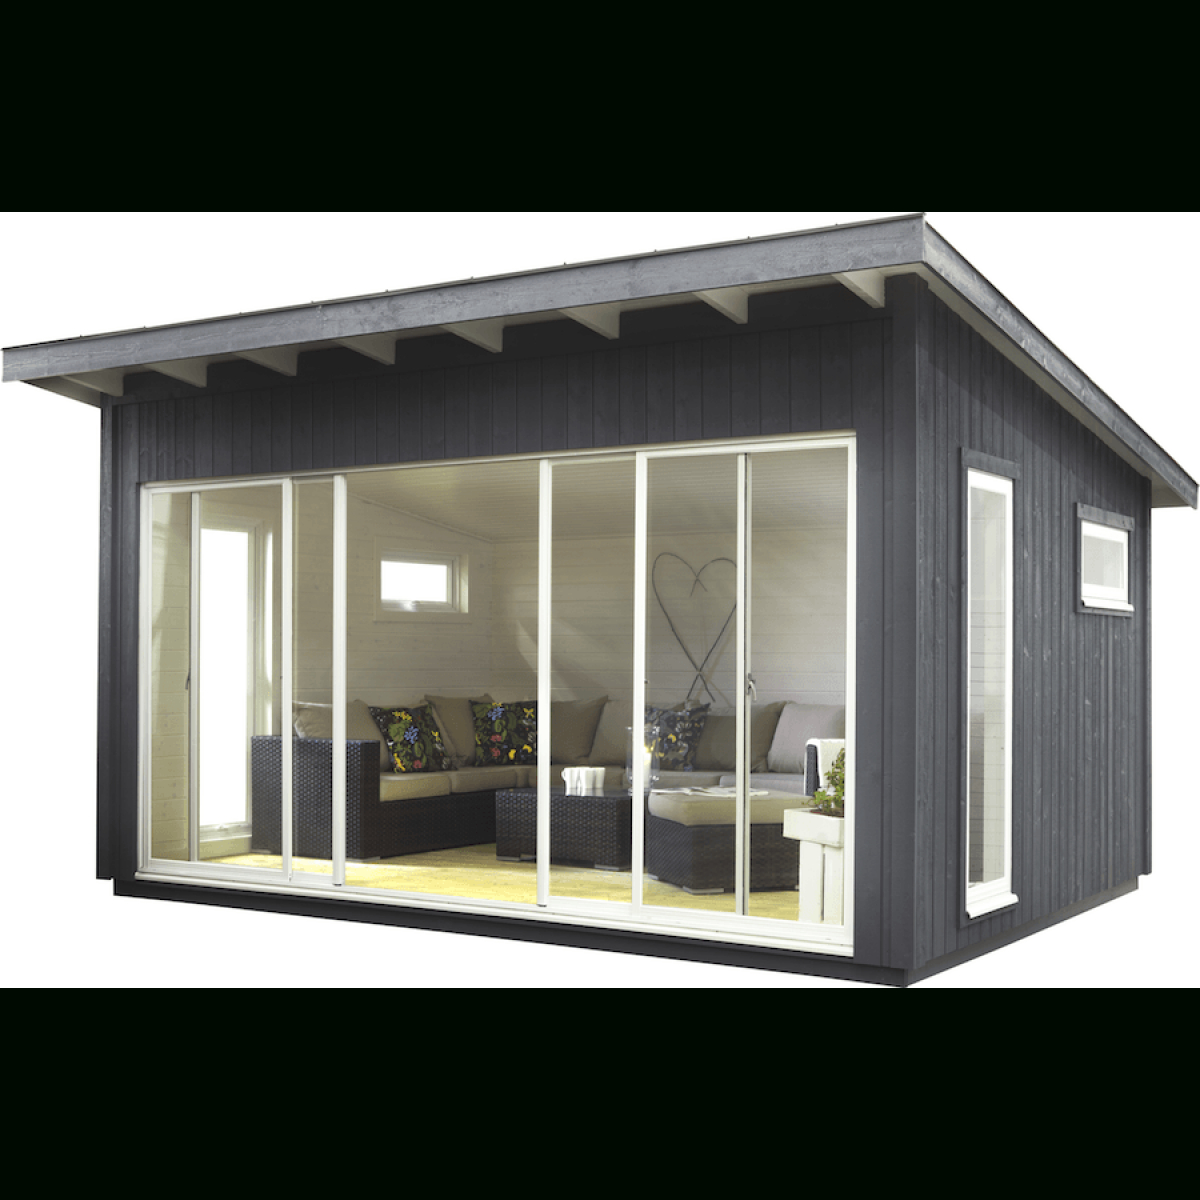 Idea By Soph 🌙 On Interior | Shed, Shed Plans, Backyard Office à Abri De Jardin 15M2